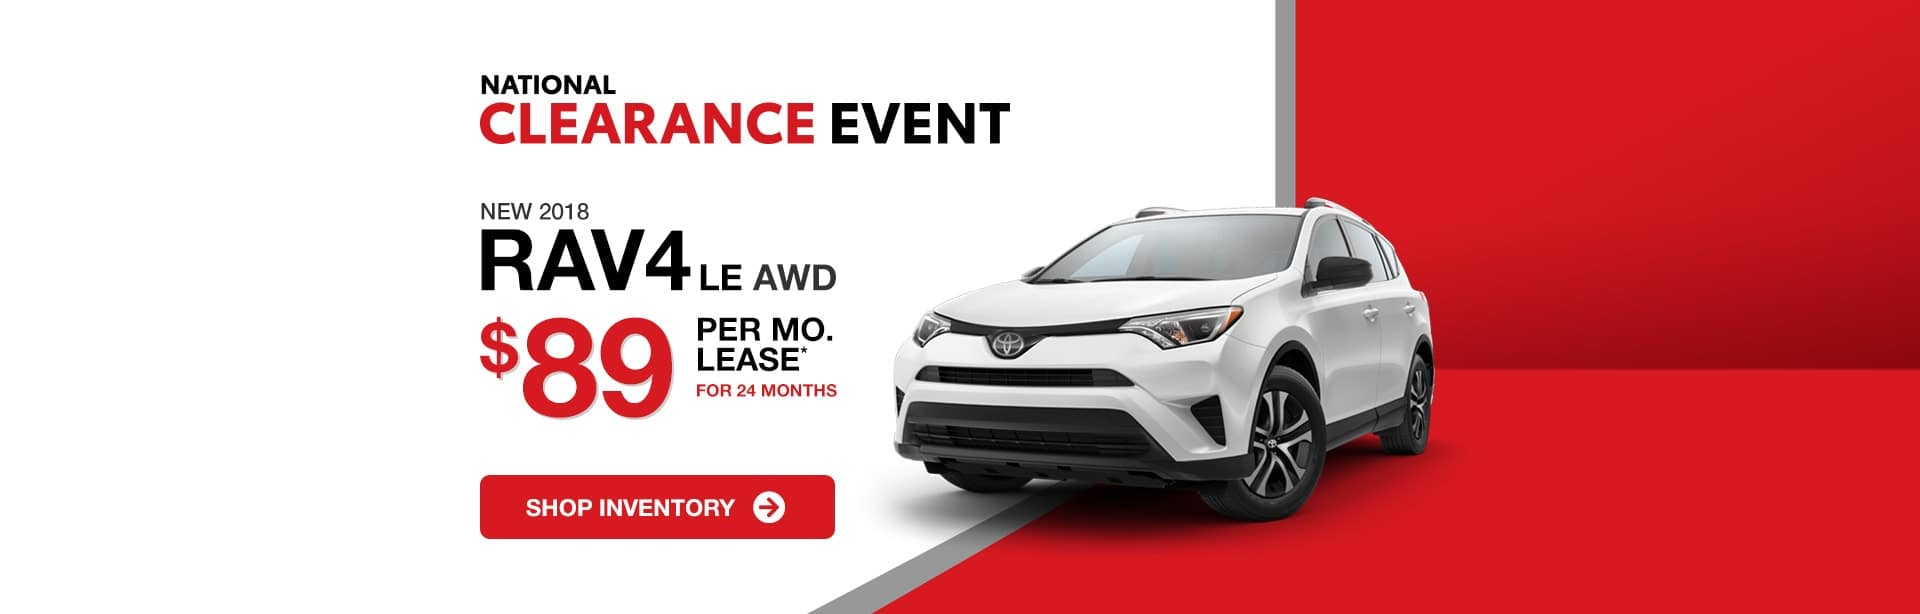 Toyota RAV4 Lease Special Indianapolis